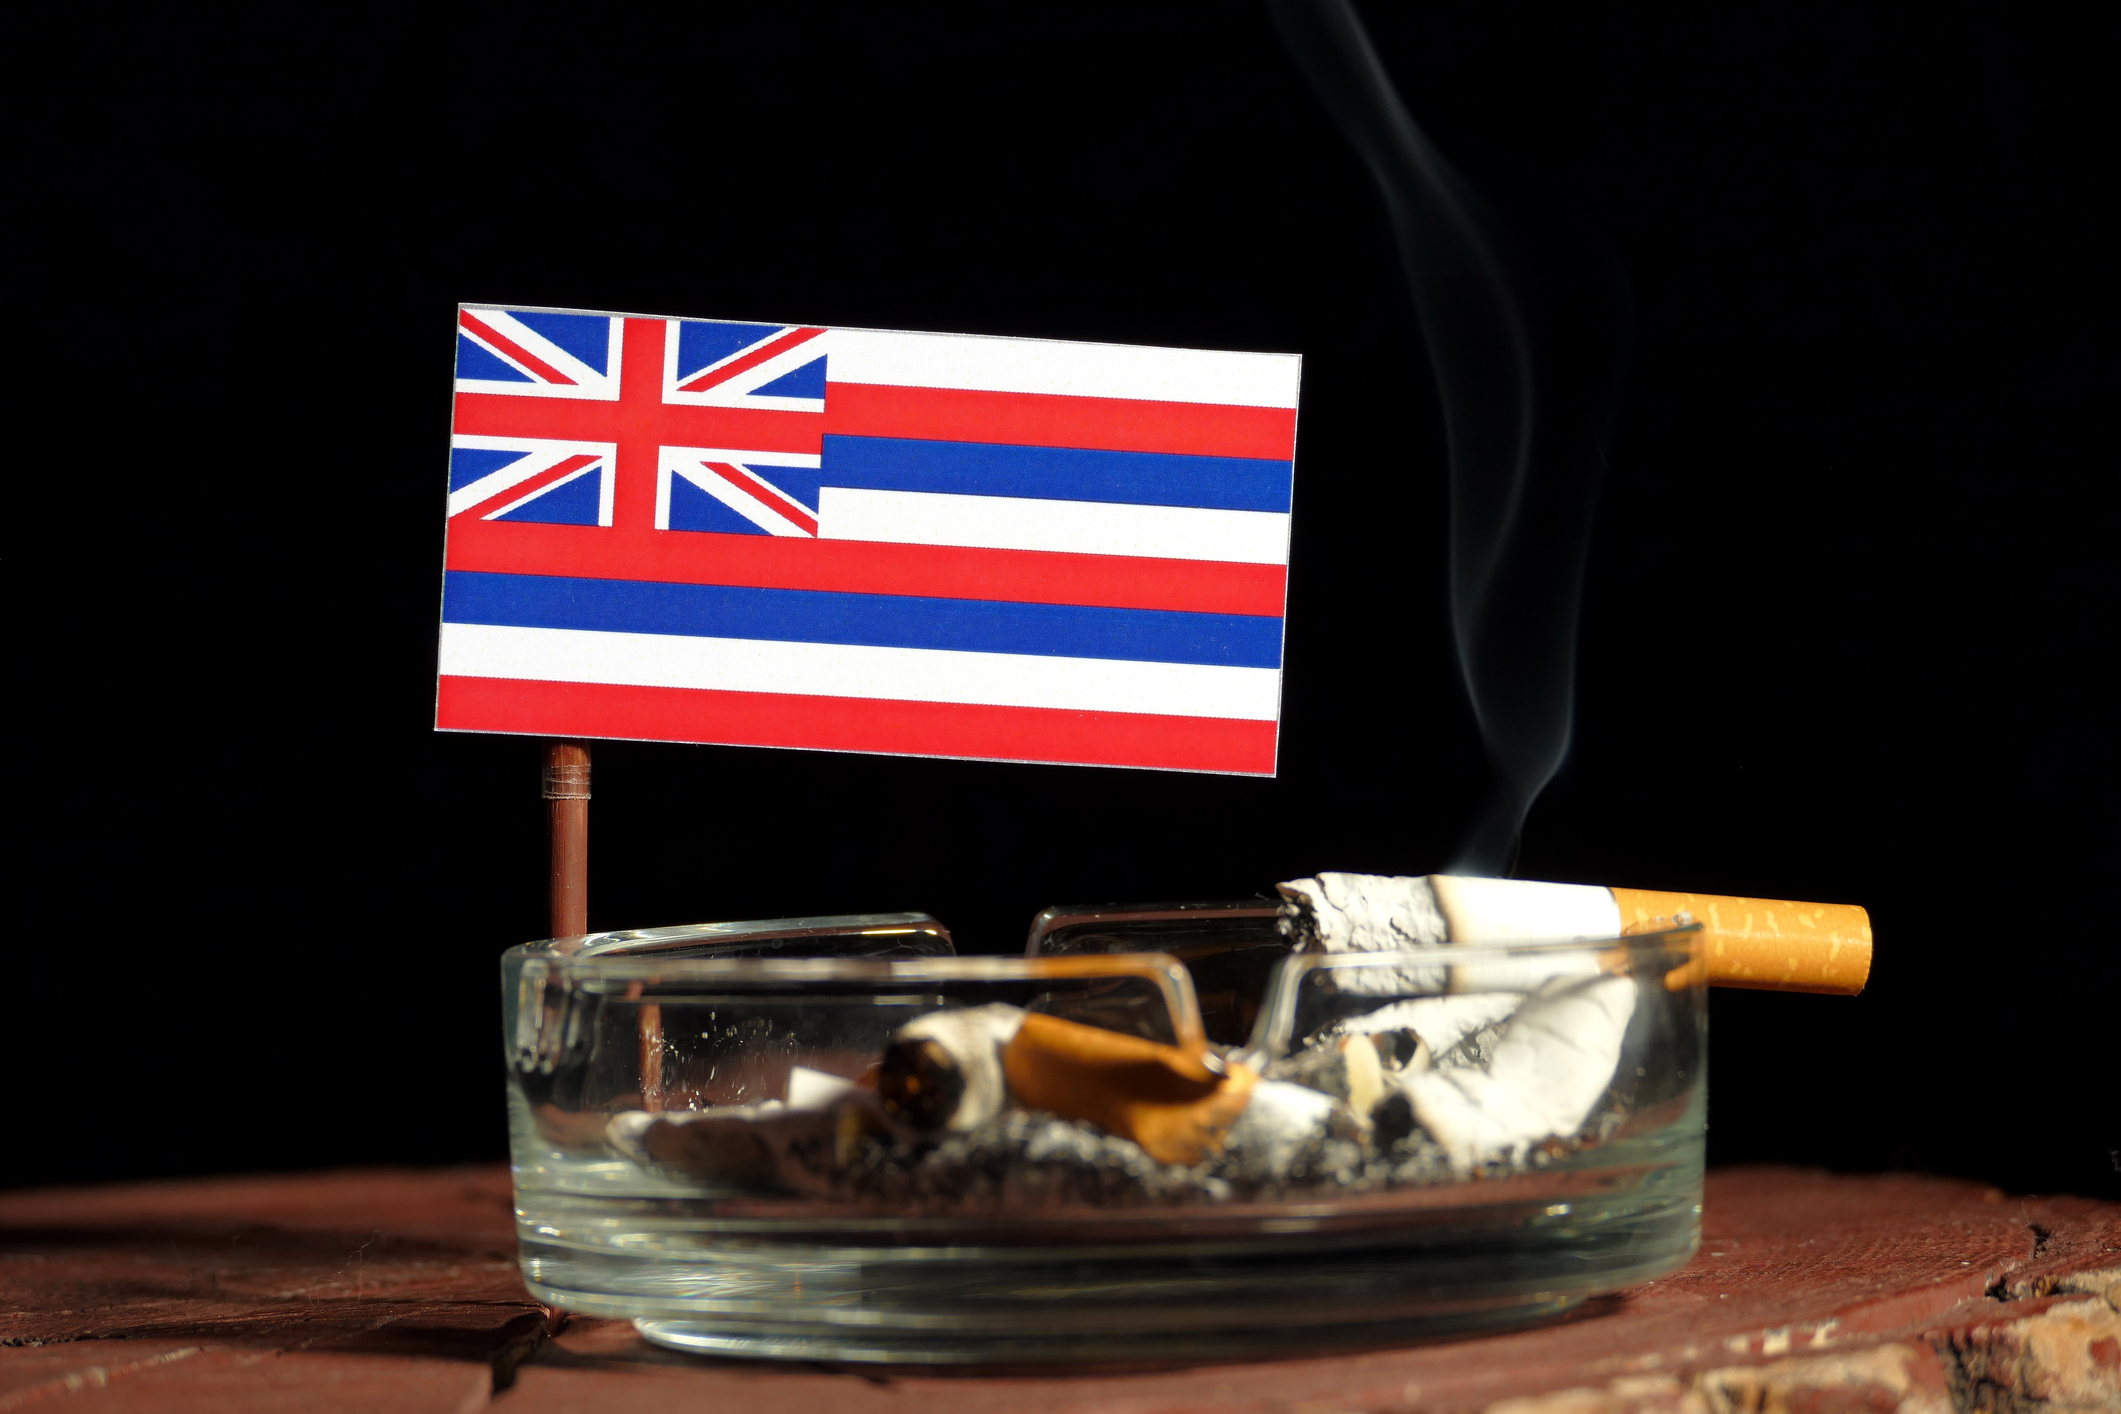 Hawaii flag with burning cigarette in ashtray isolated on black background